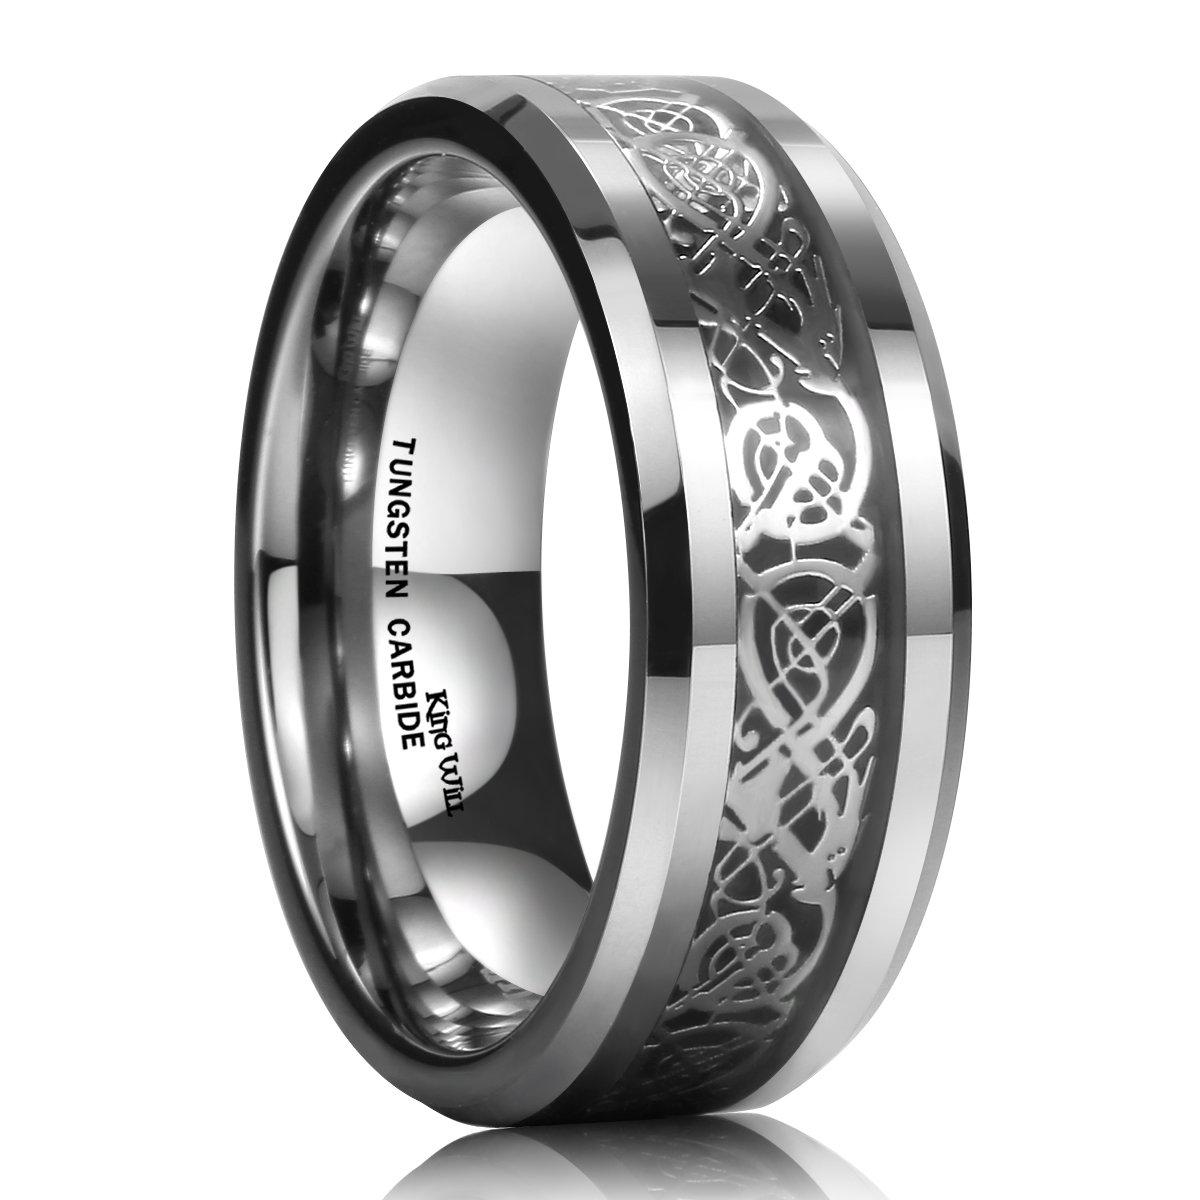 King Will Dragon Men Tungsten Carbide Ring Wedding Band 8mm Silver Celtic Inlay Polish Finish Amazon: Cross Backround Wedding Bands At Websimilar.org